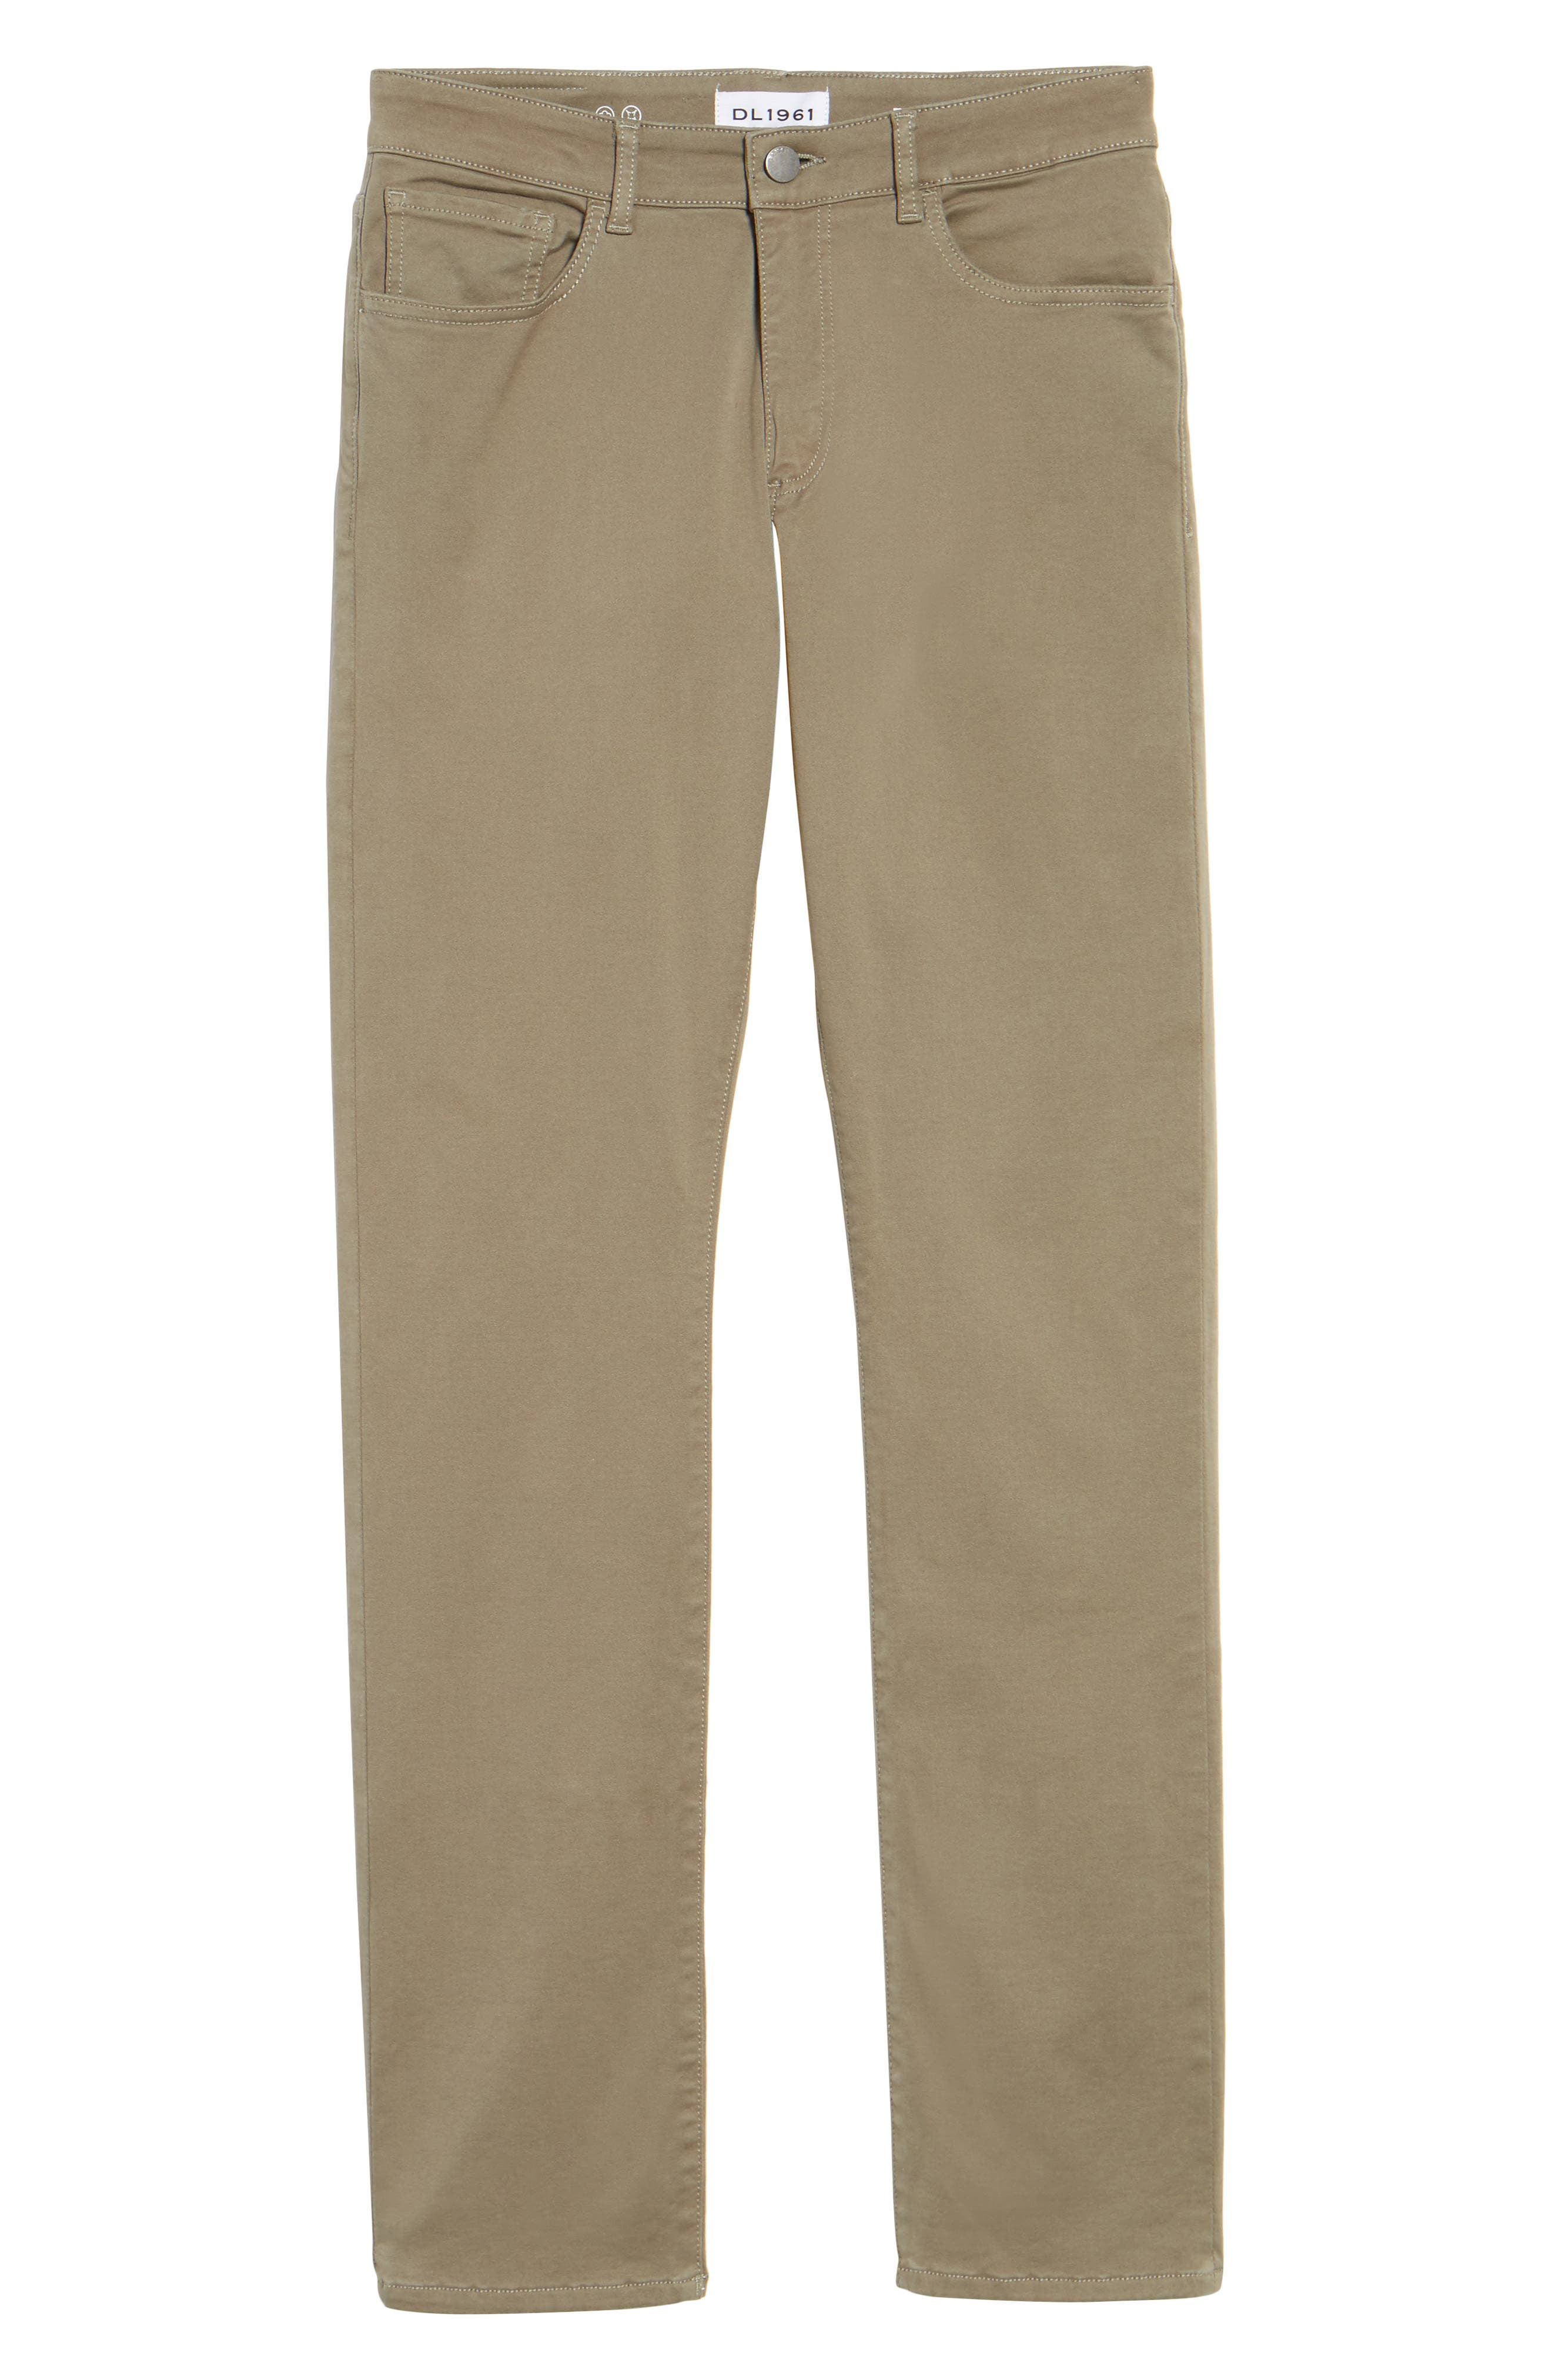 Russell Slim Fit Sateen Twill Pants,                             Alternate thumbnail 59, color,